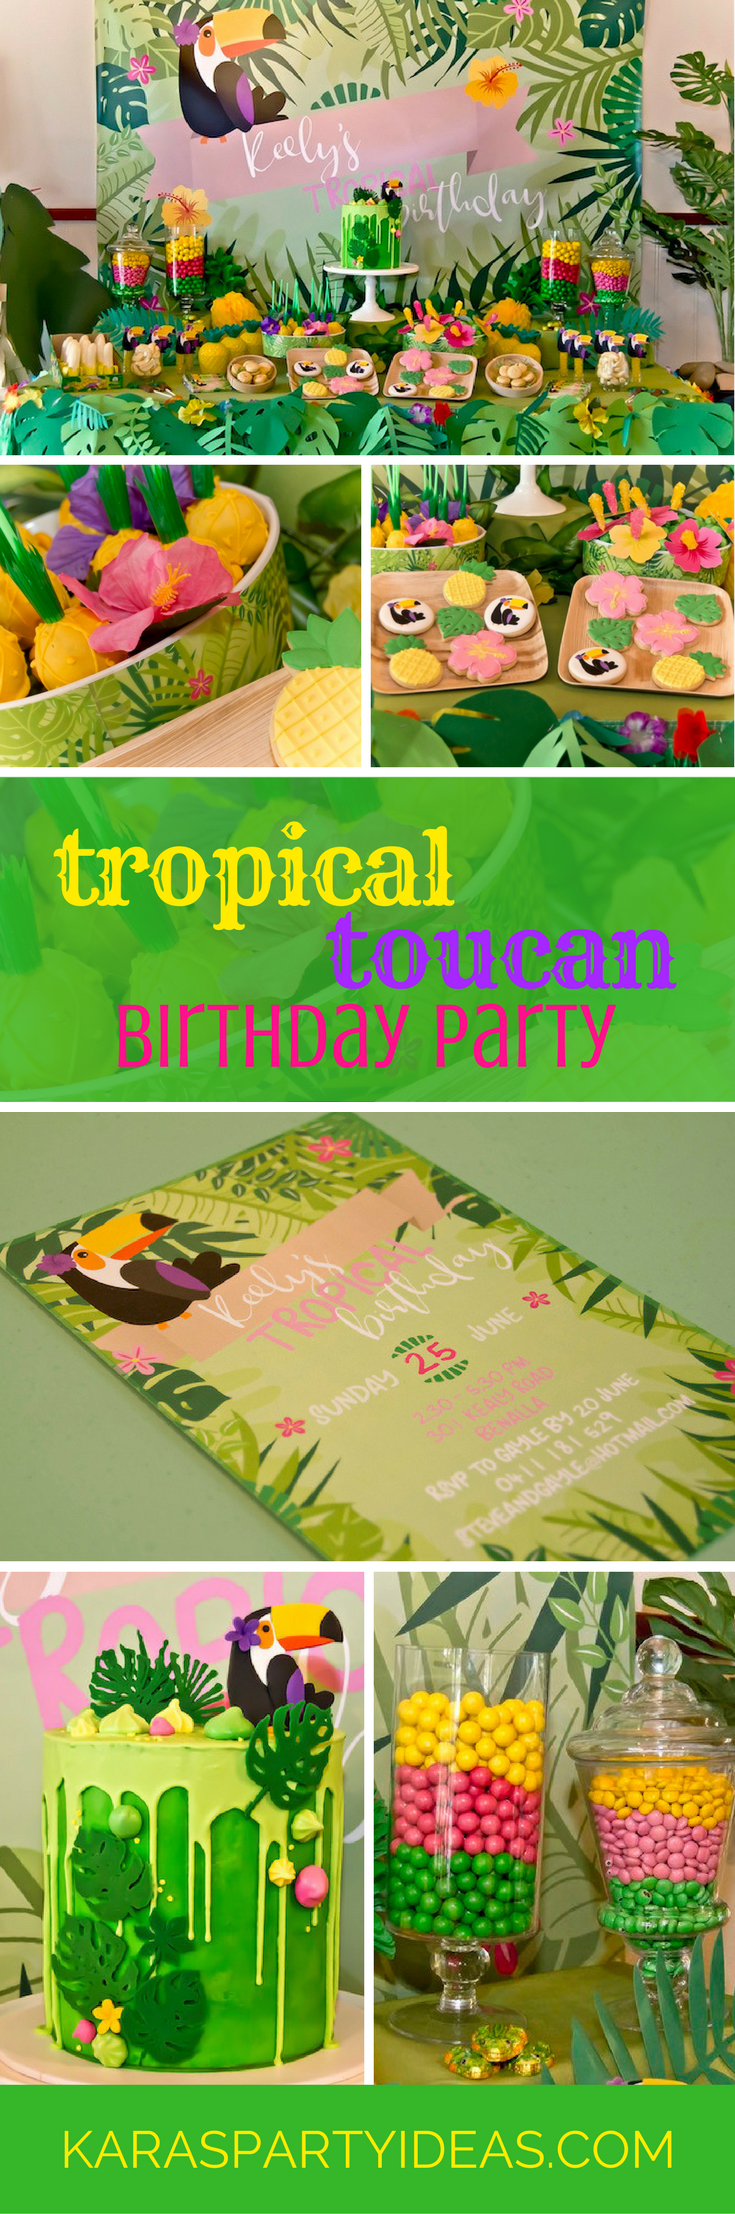 Kara\'s Party Ideas Tropical Toucan Birthday Party | Kara\'s Party Ideas